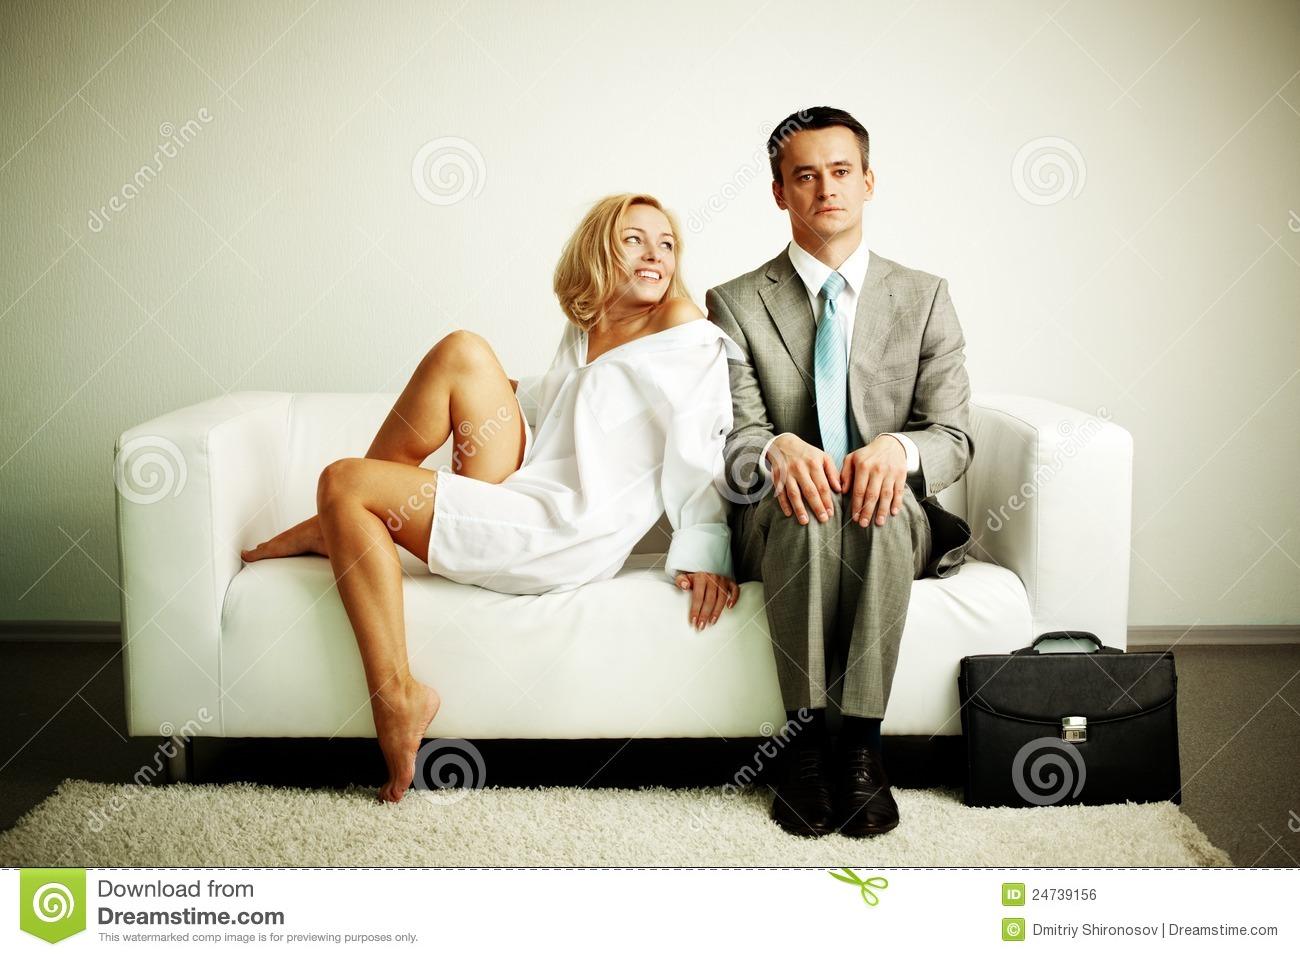 Asian Couple Sex About The Sofa